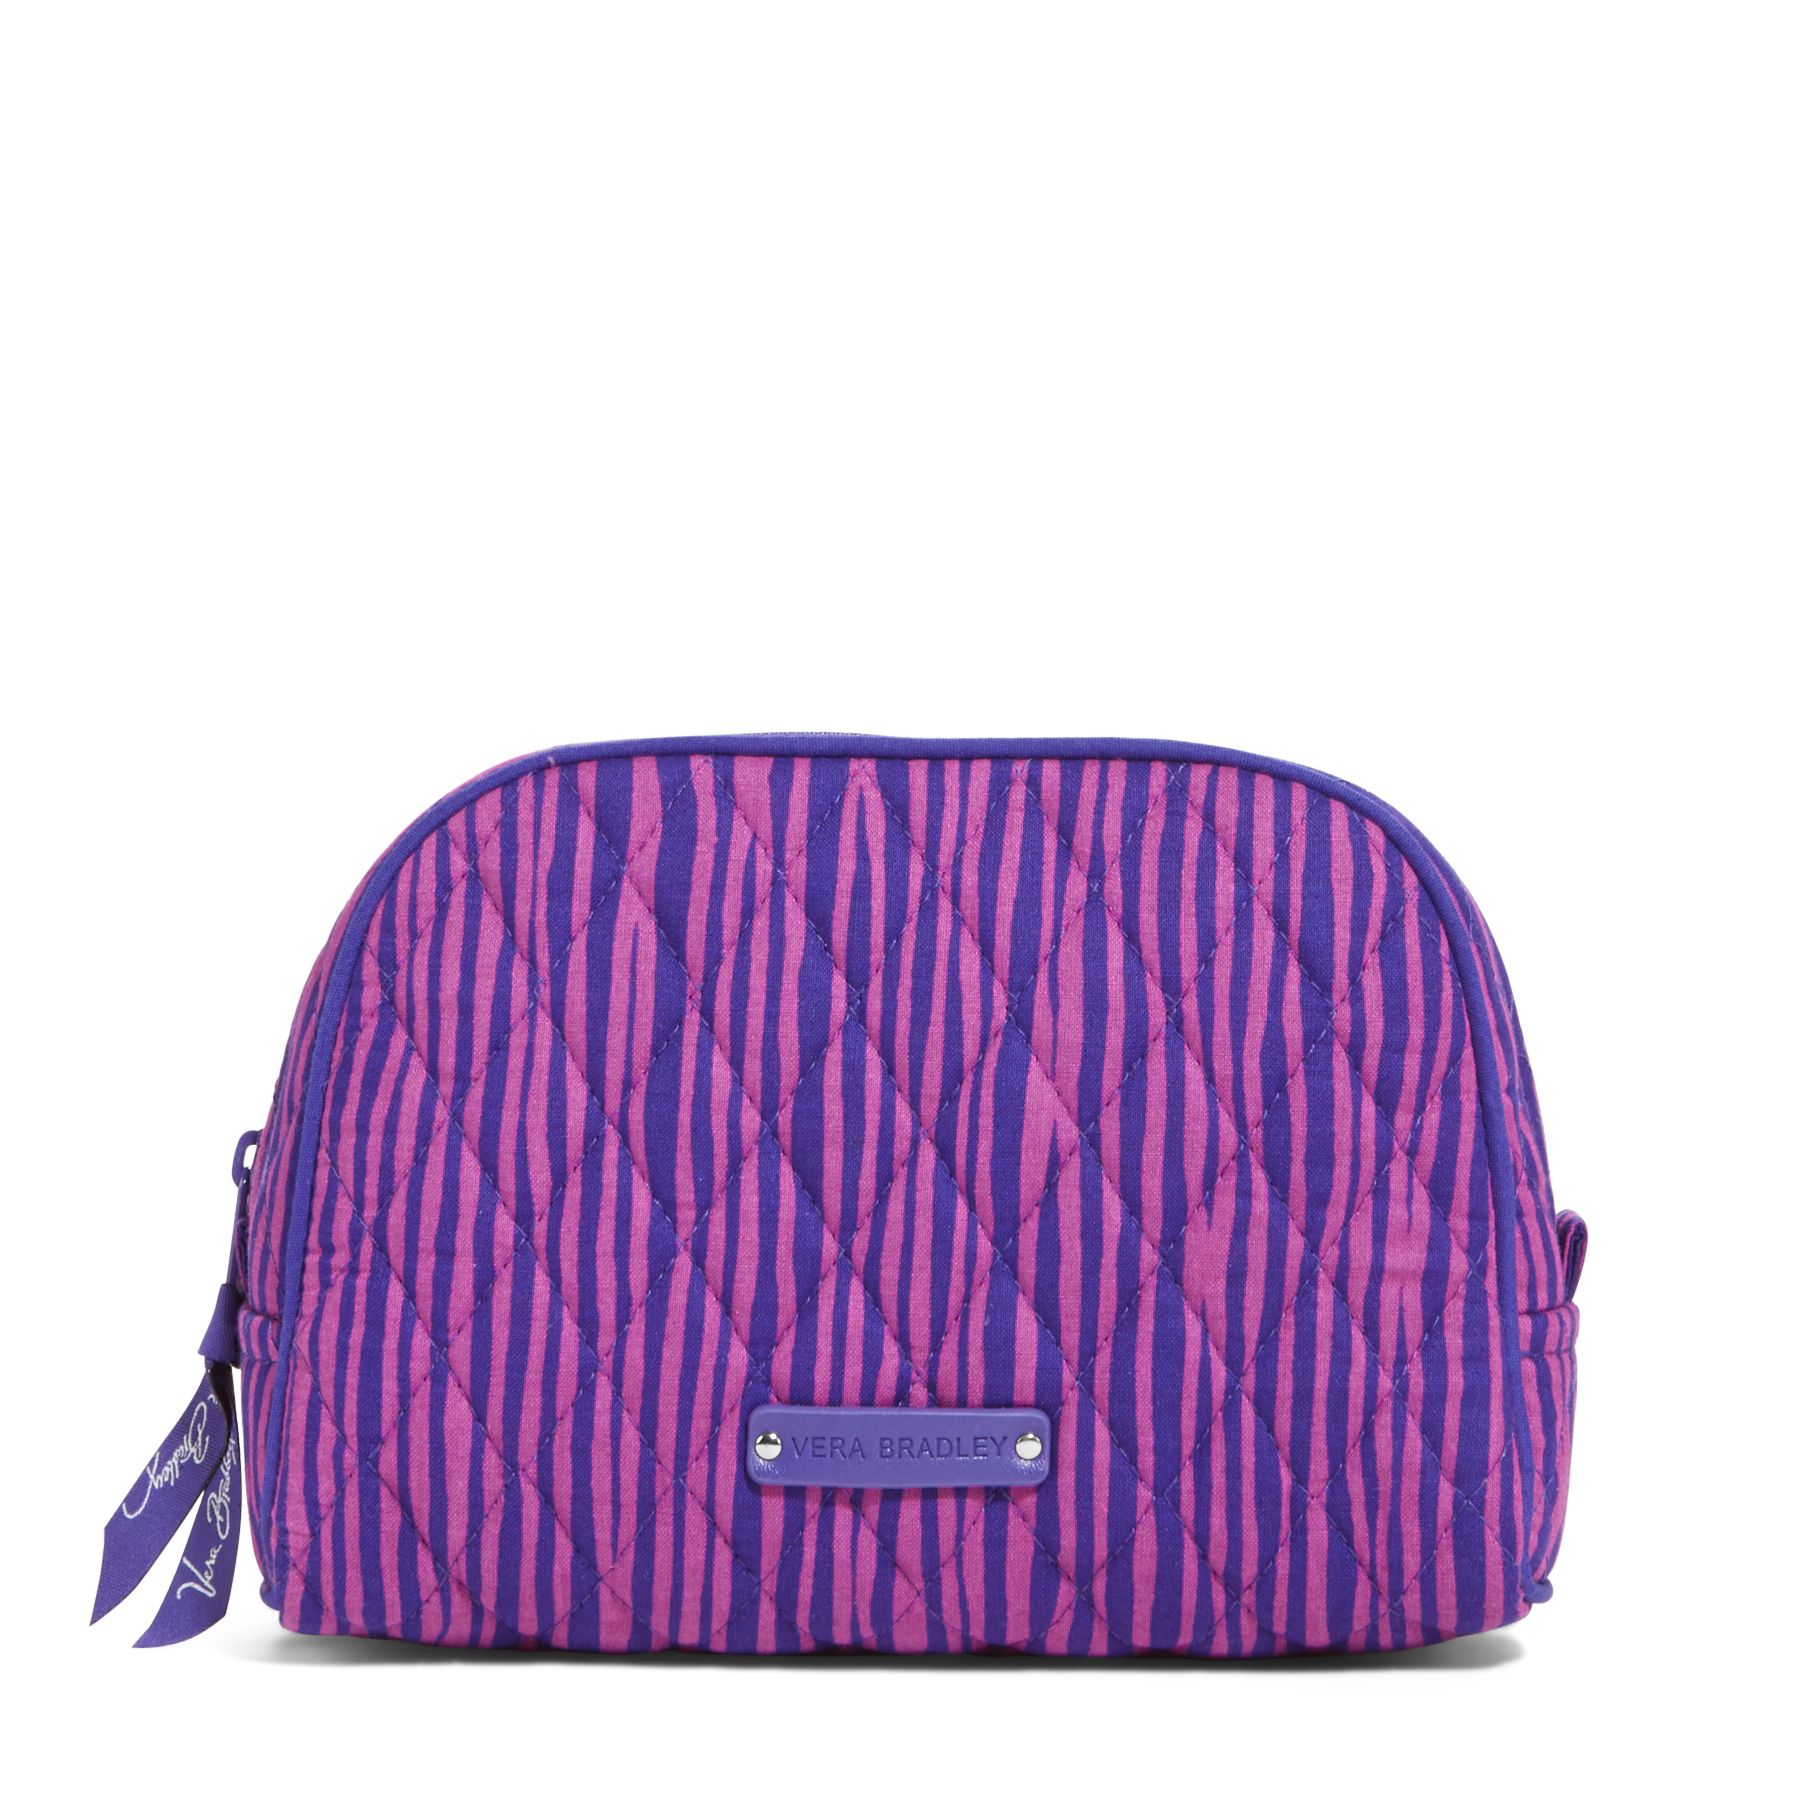 Vera Bradley Medium Zip Cosmetic Bag in Impressionista Stripe